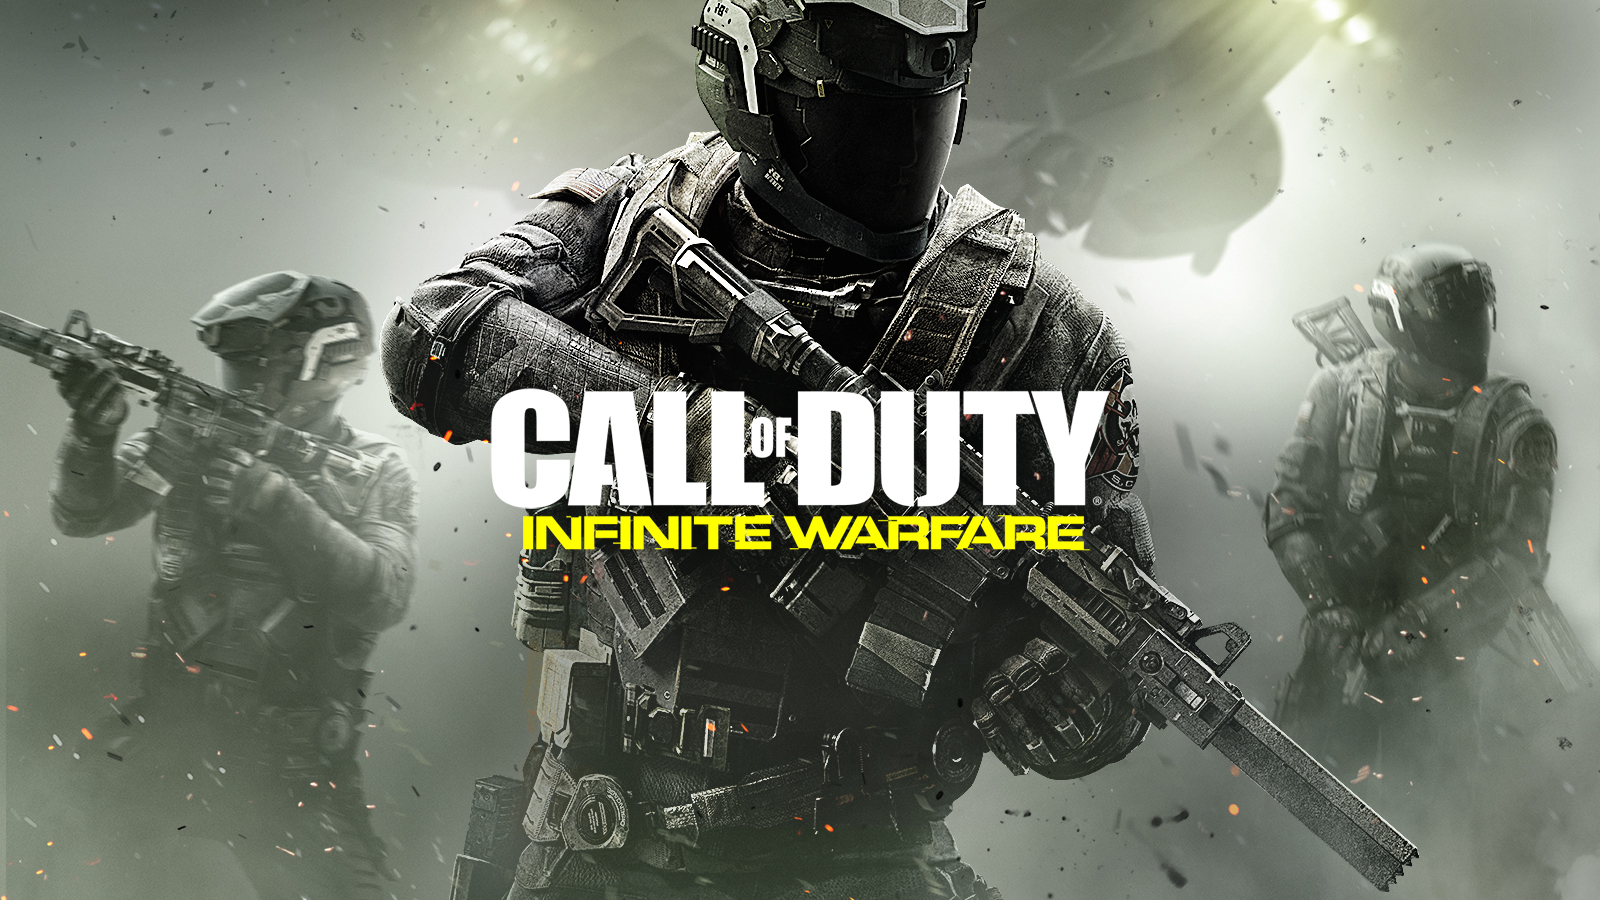 call of duty infinate warfare computer wallpaper 489